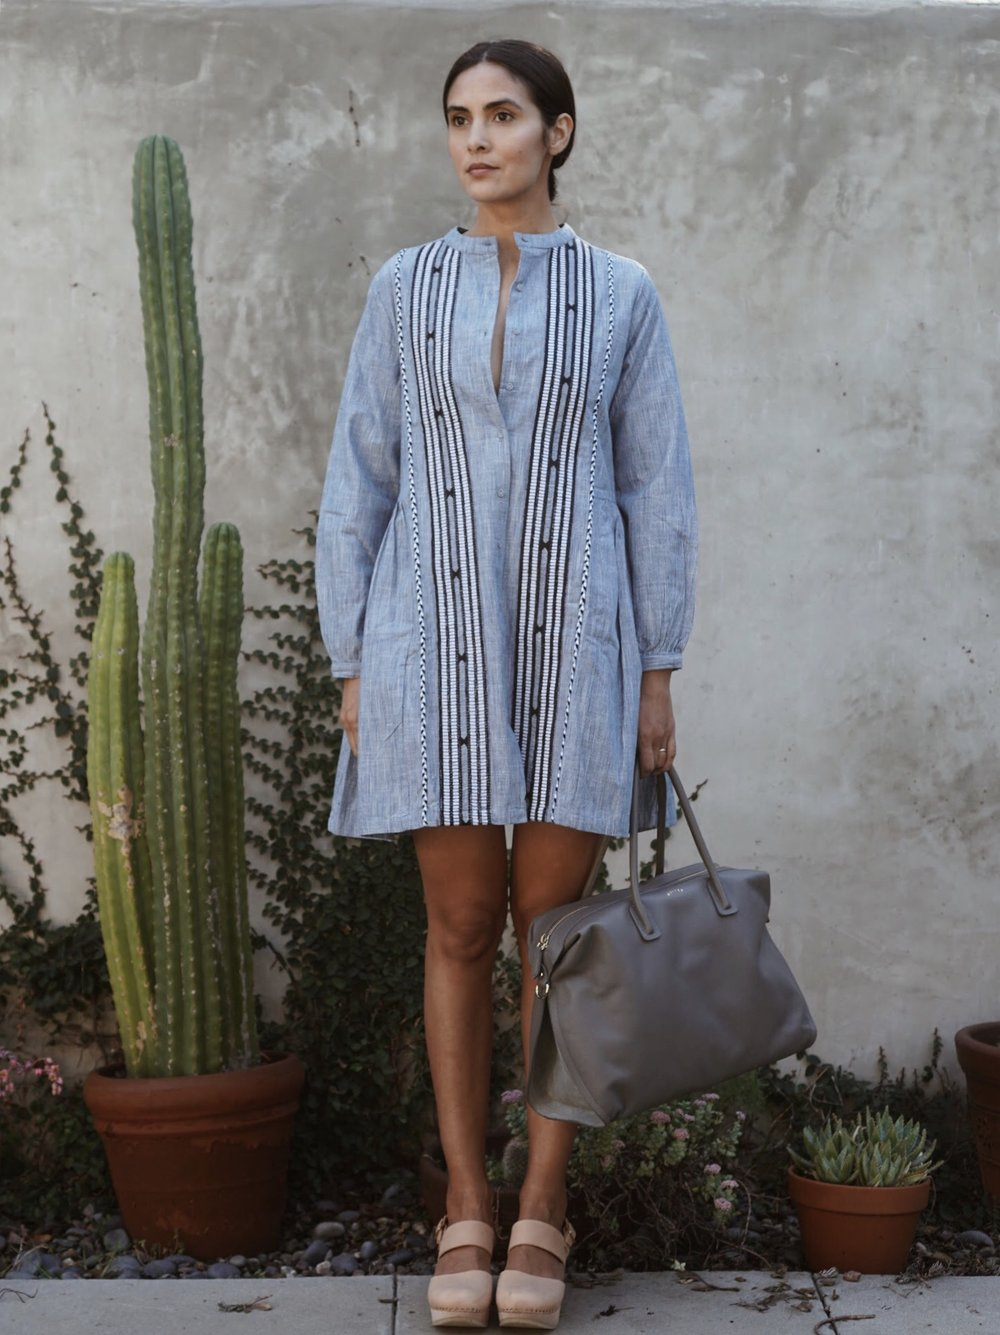 Kopal  Riya Dress in Indigo Stripe +  Maiyet  Como Large Satchel in Grey +   Zuzii   Closed Toe Clogs in Natural.